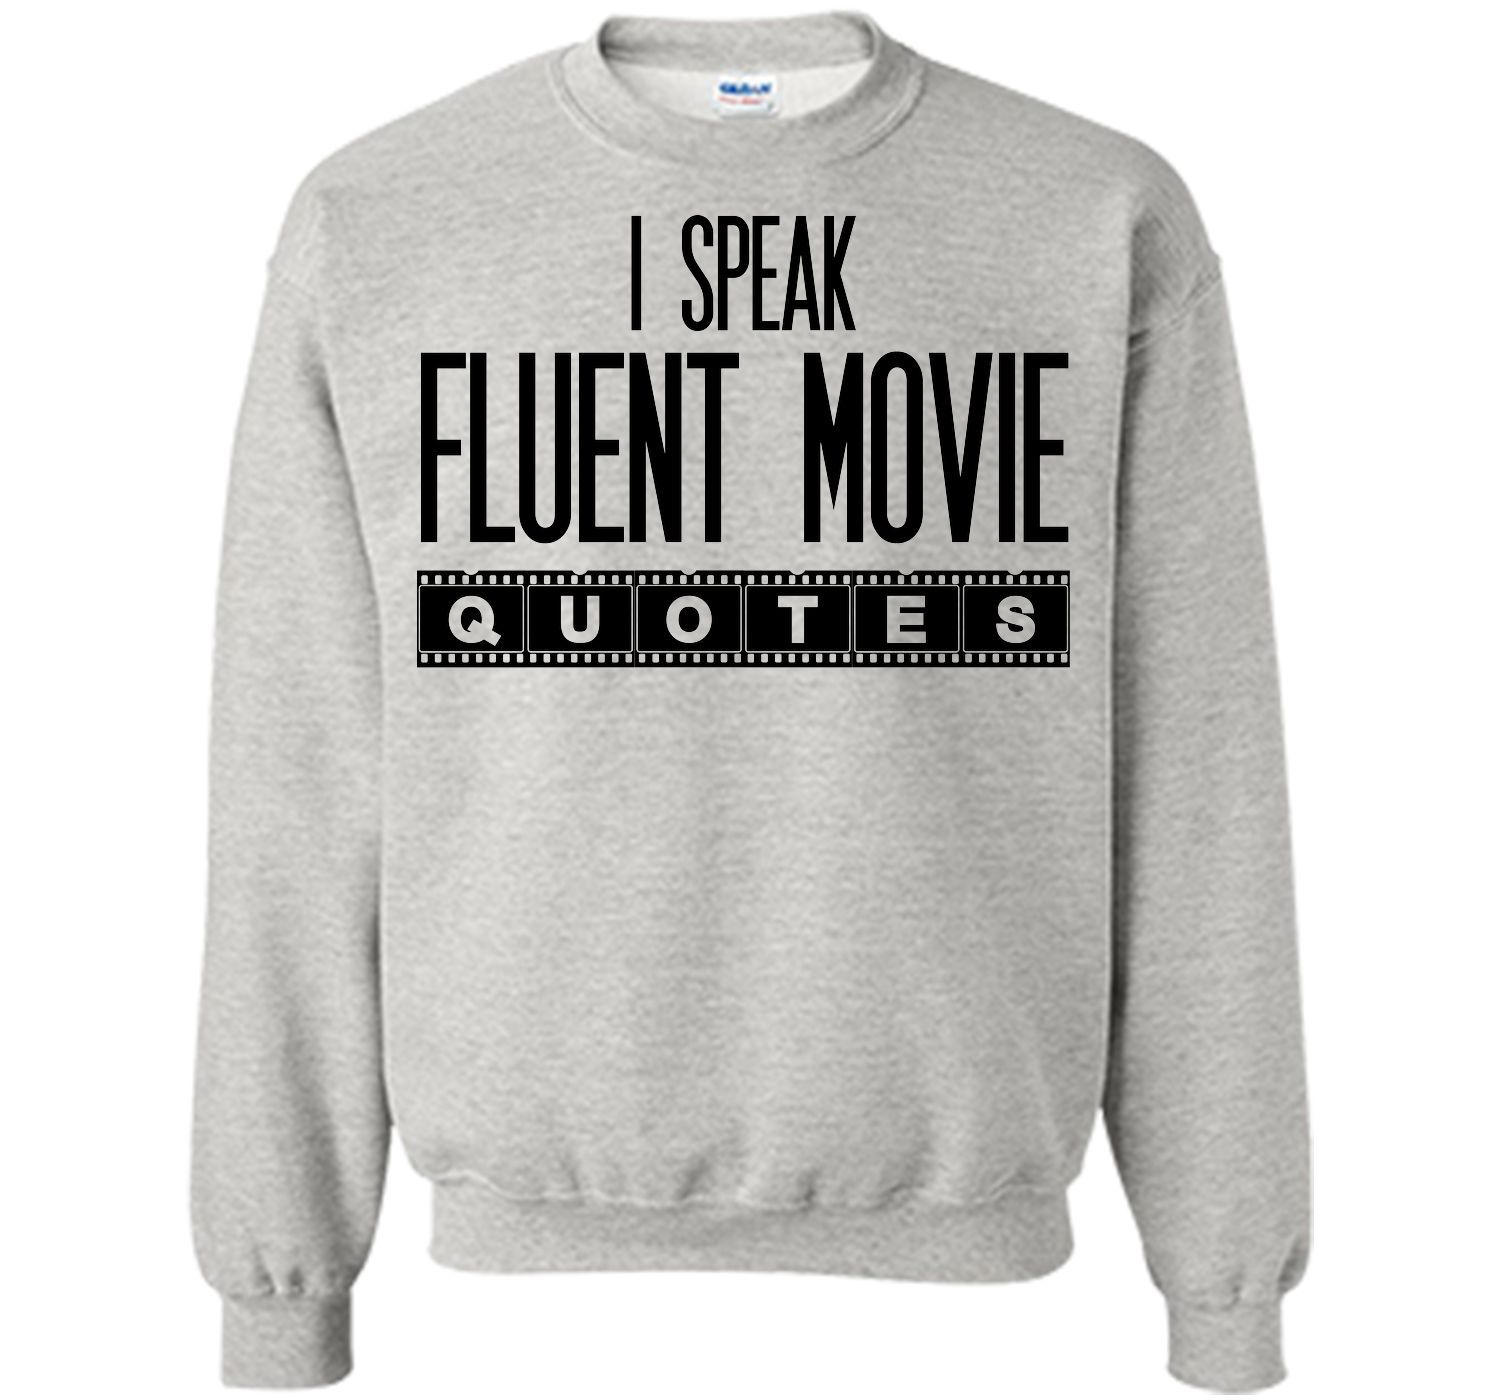 I speak fluent movie quotes tshirt products pinterest products